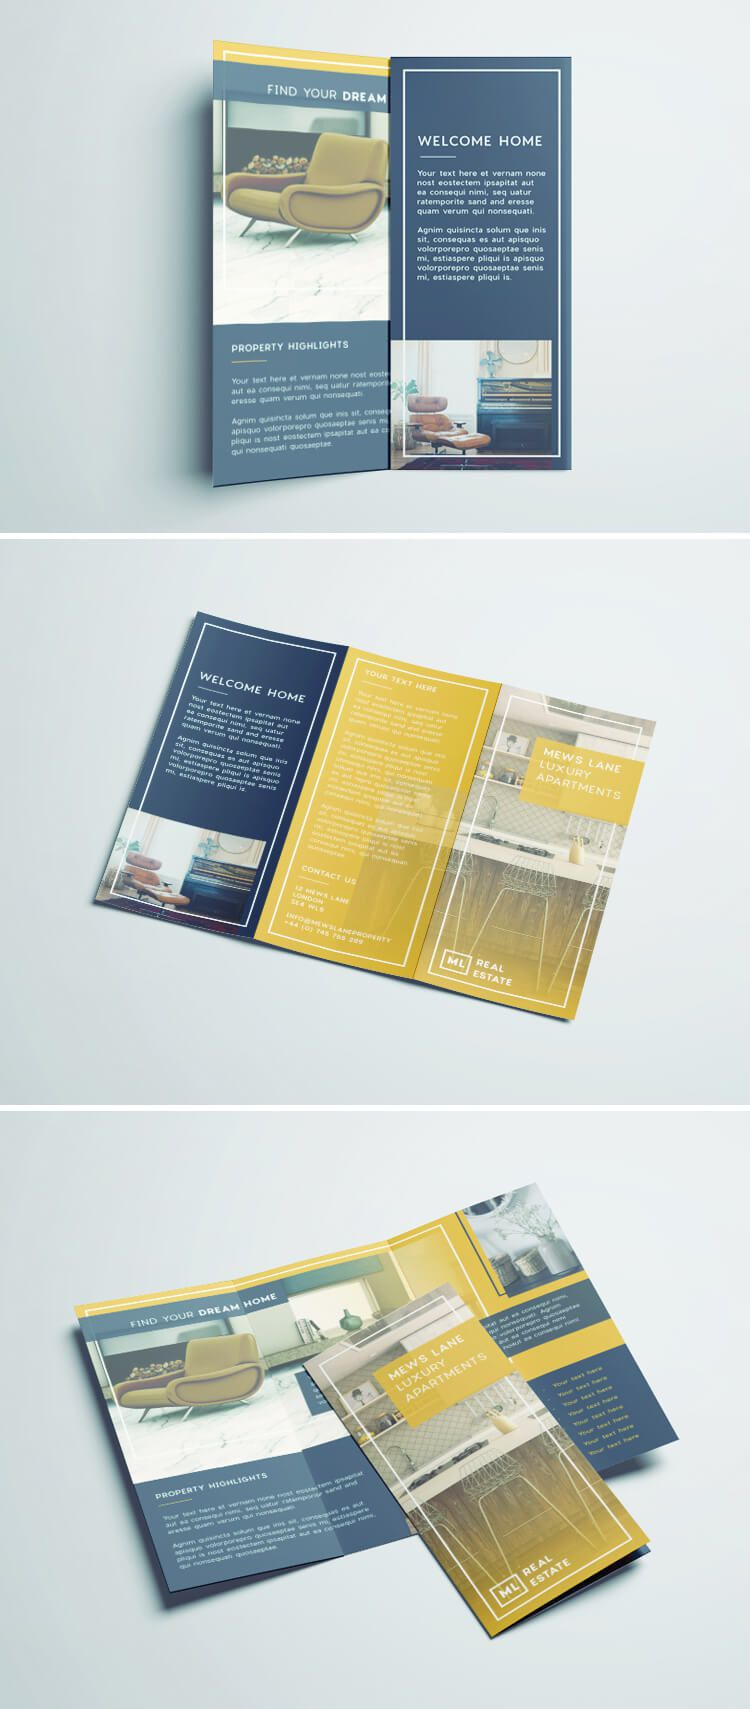 007 Amazing Tri Fold Brochure Indesign Template Example  Free Adobe